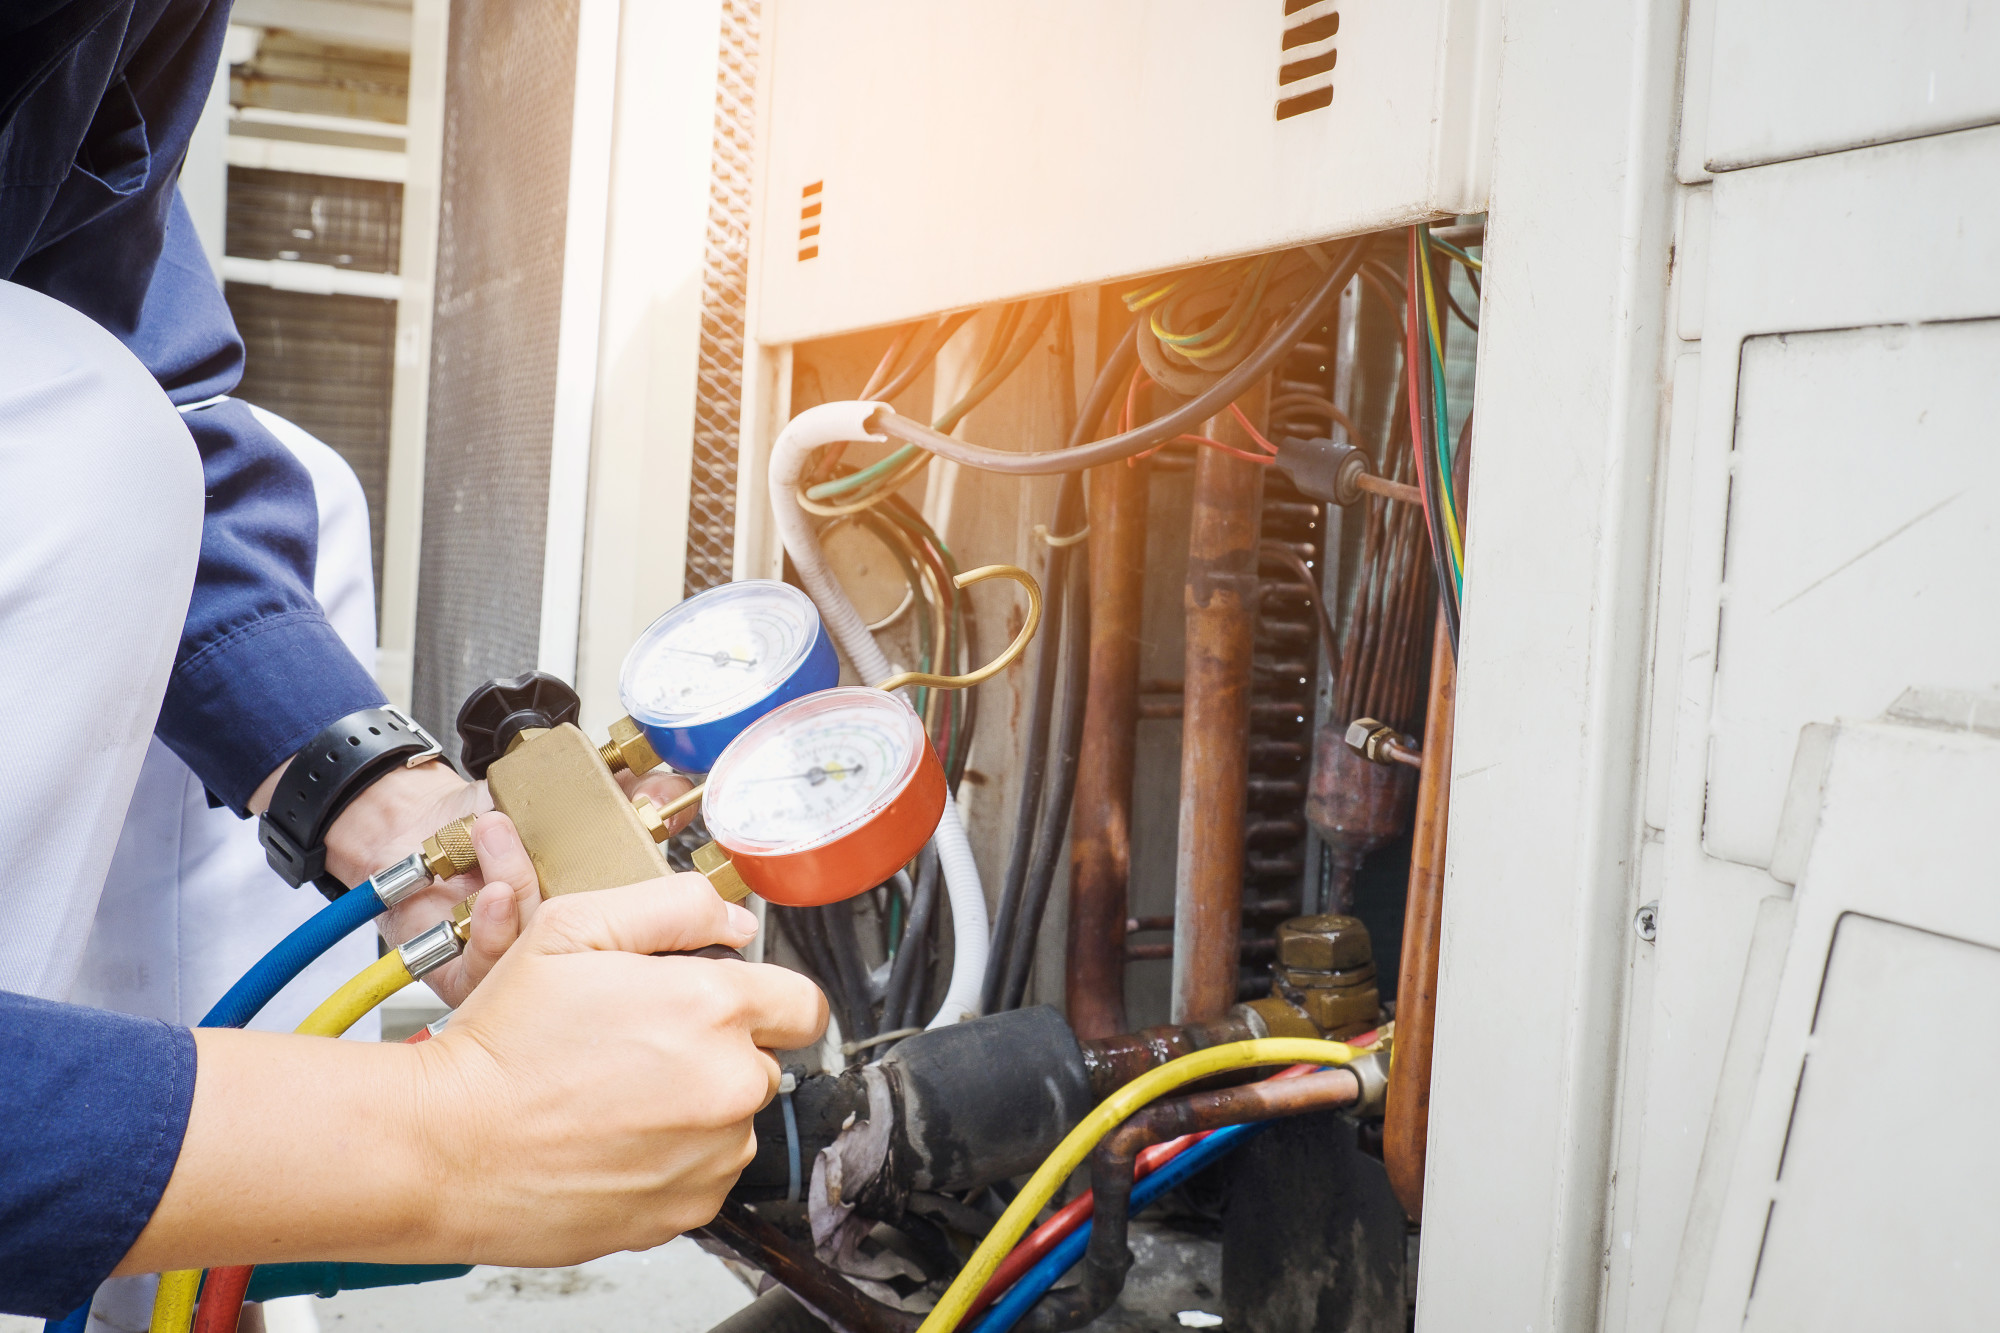 Technician's Guide to the Best HVAC Tools